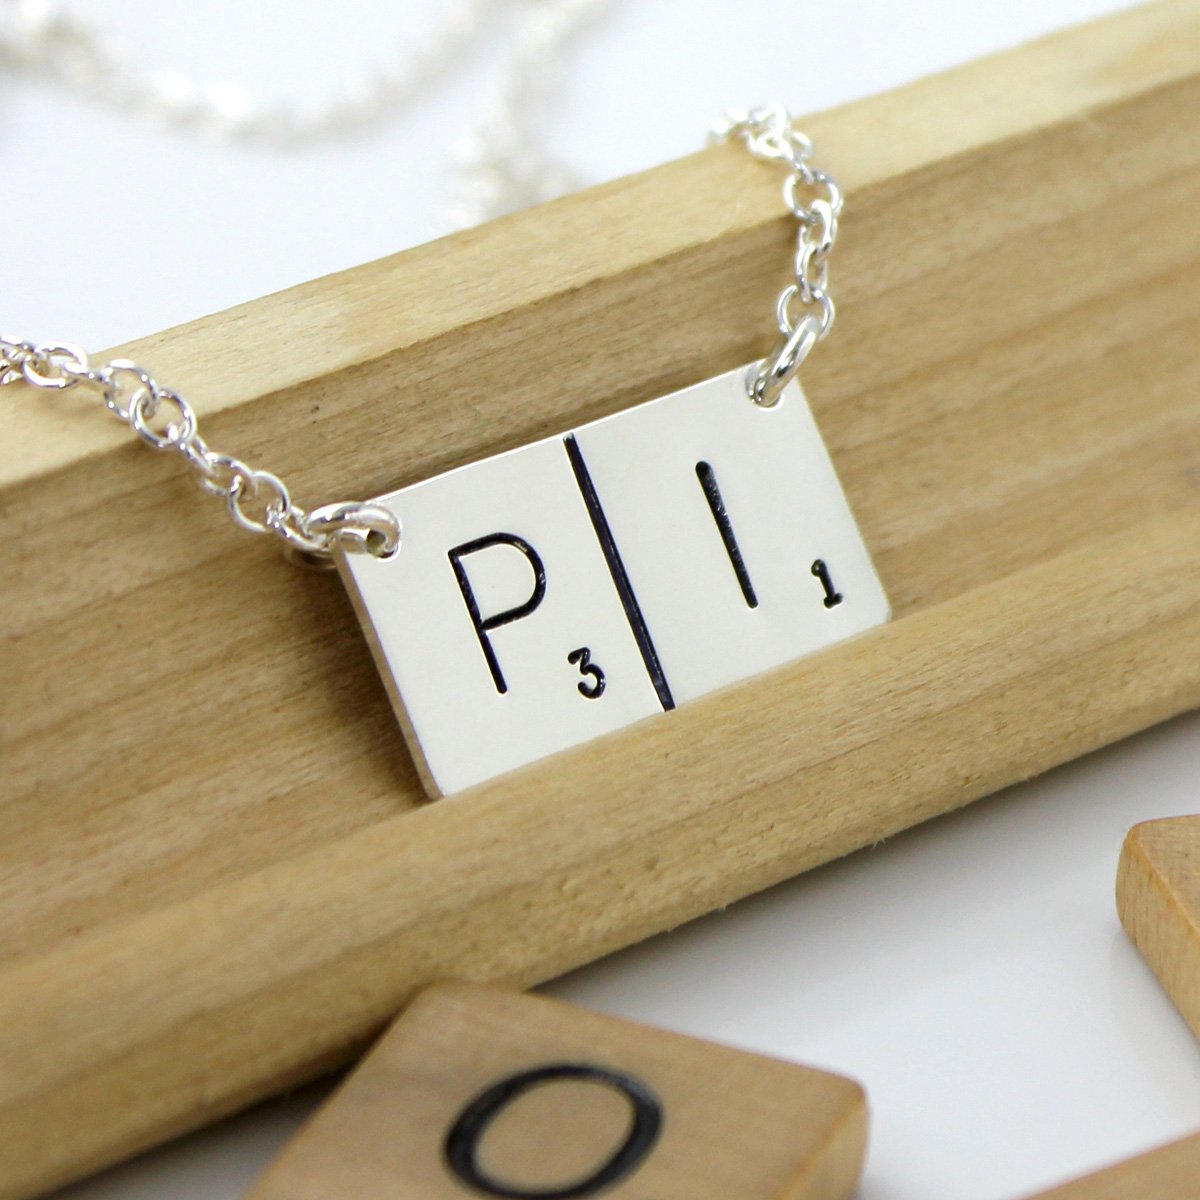 Scrabble Inspired Hand Stamped and Personalized Pi Necklace